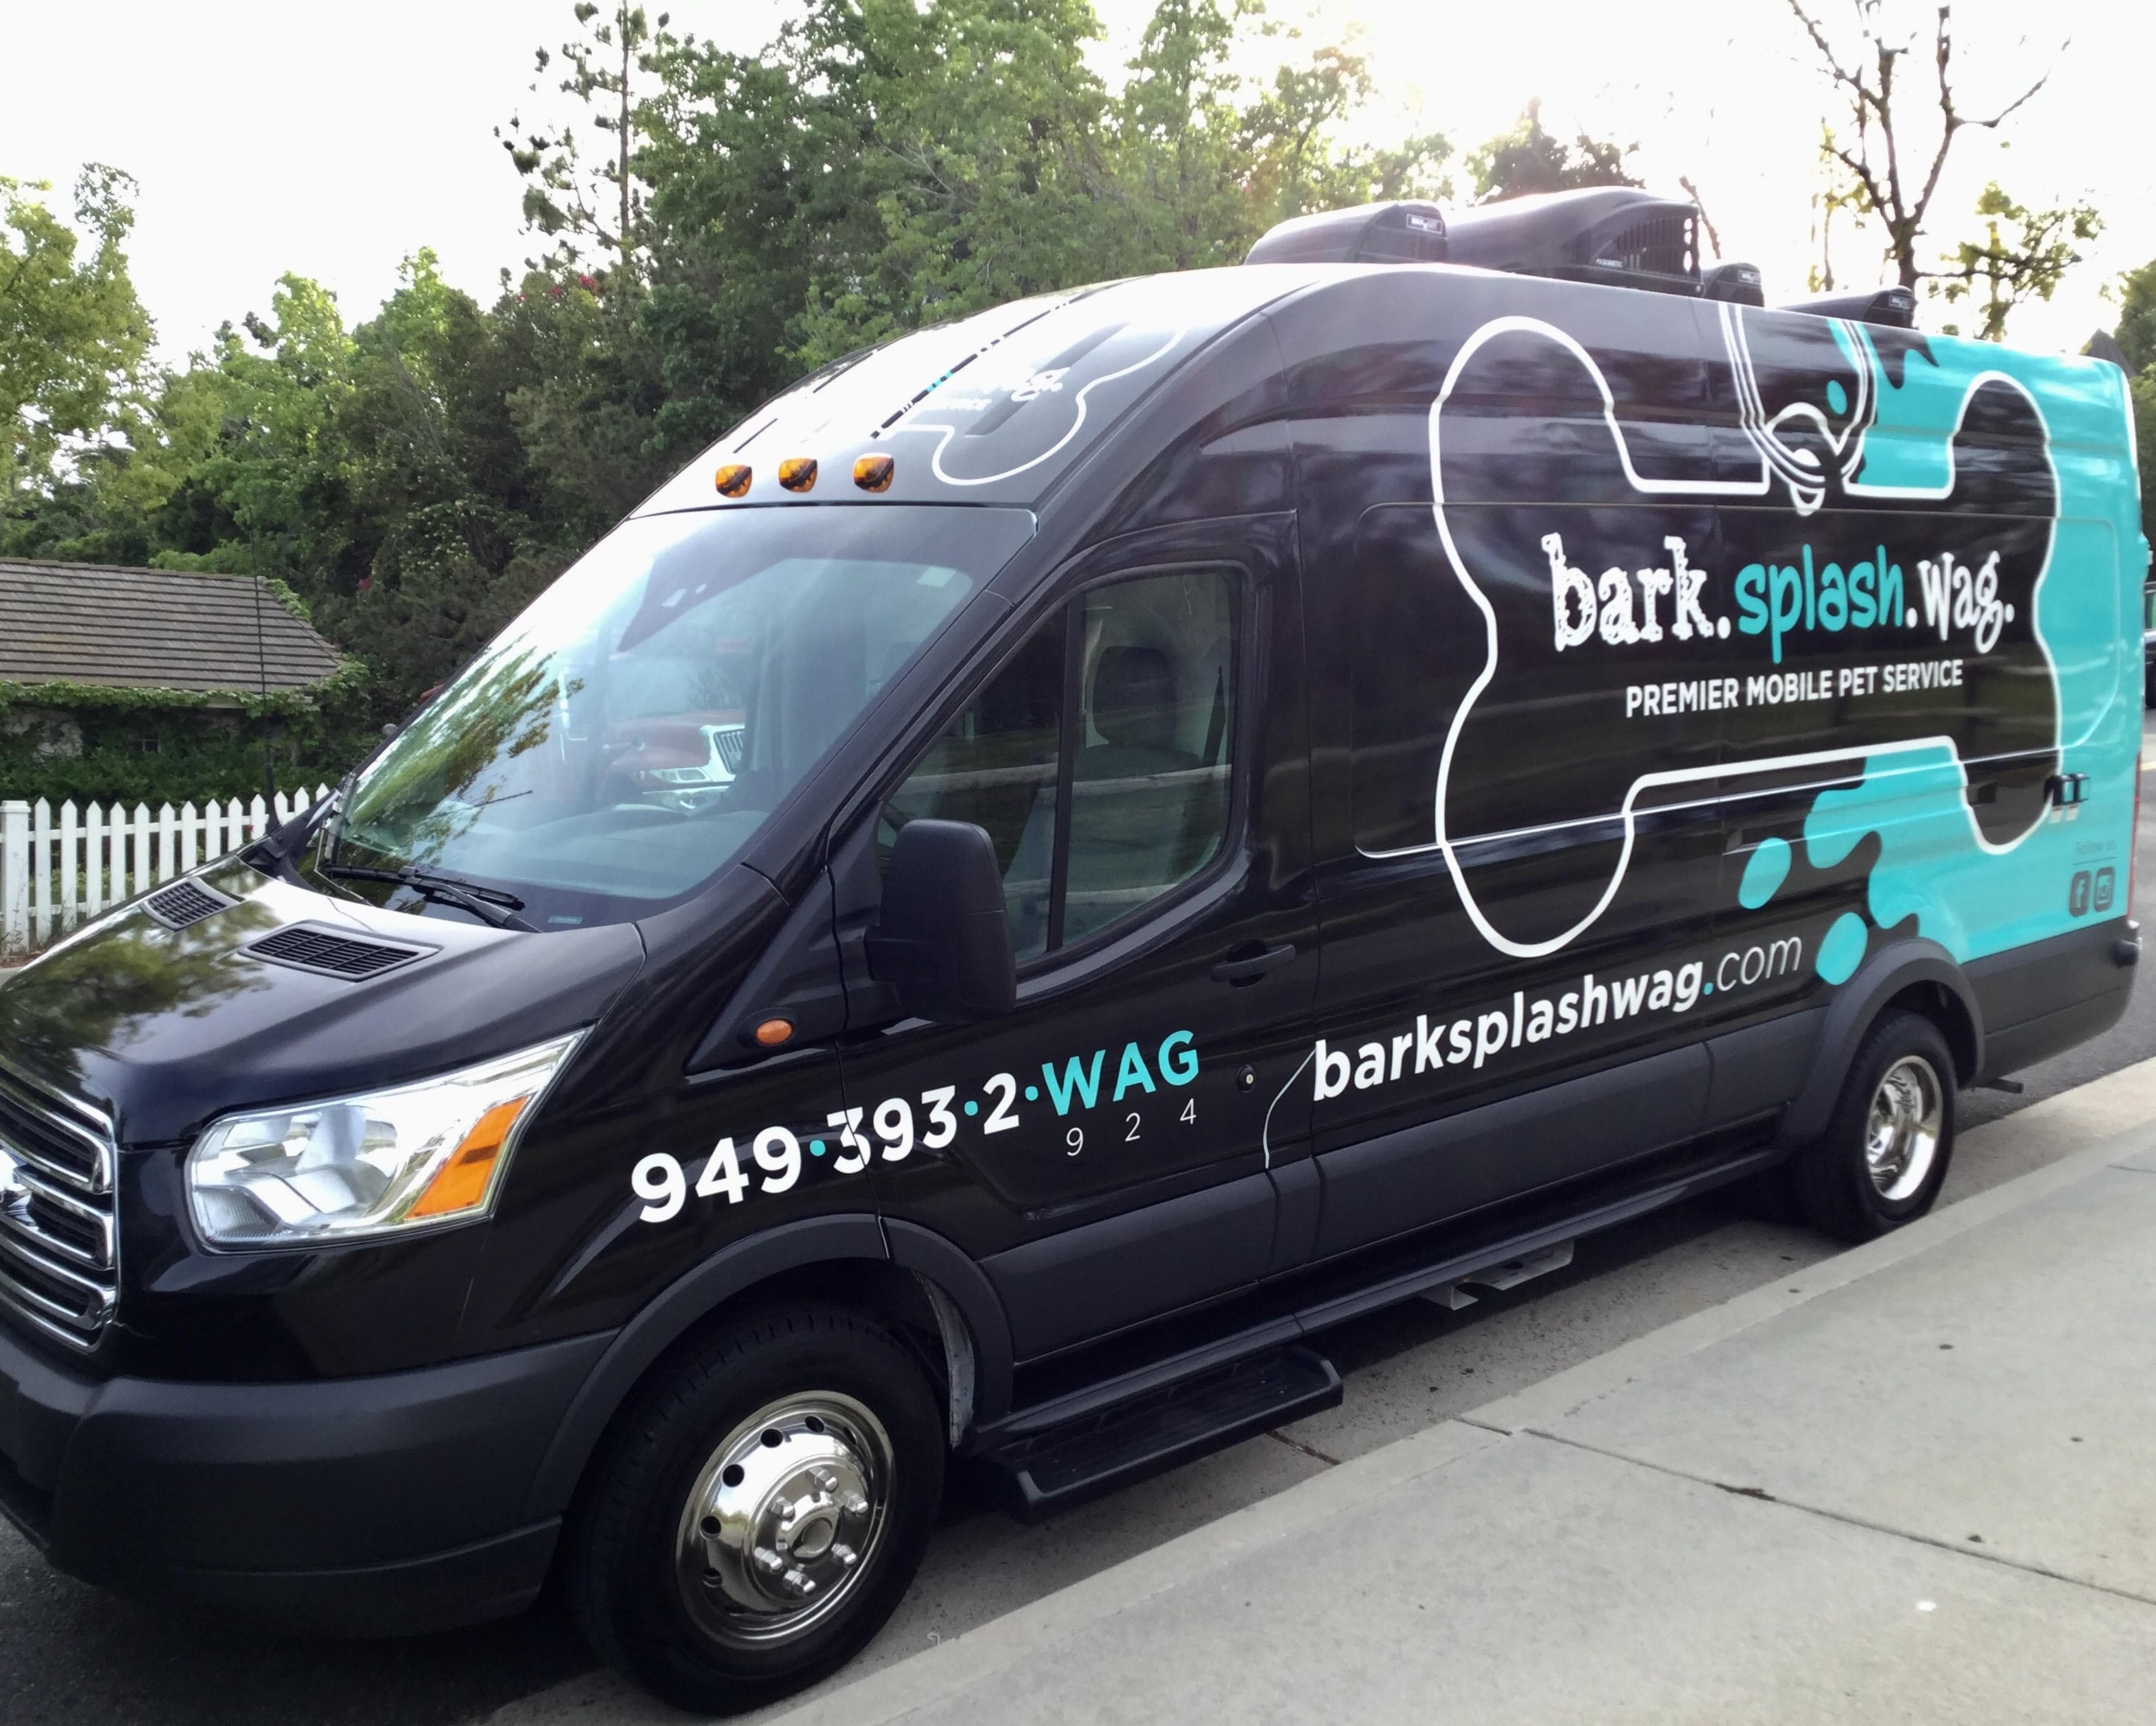 Bark.Splash.Wag. Van front side view Outside